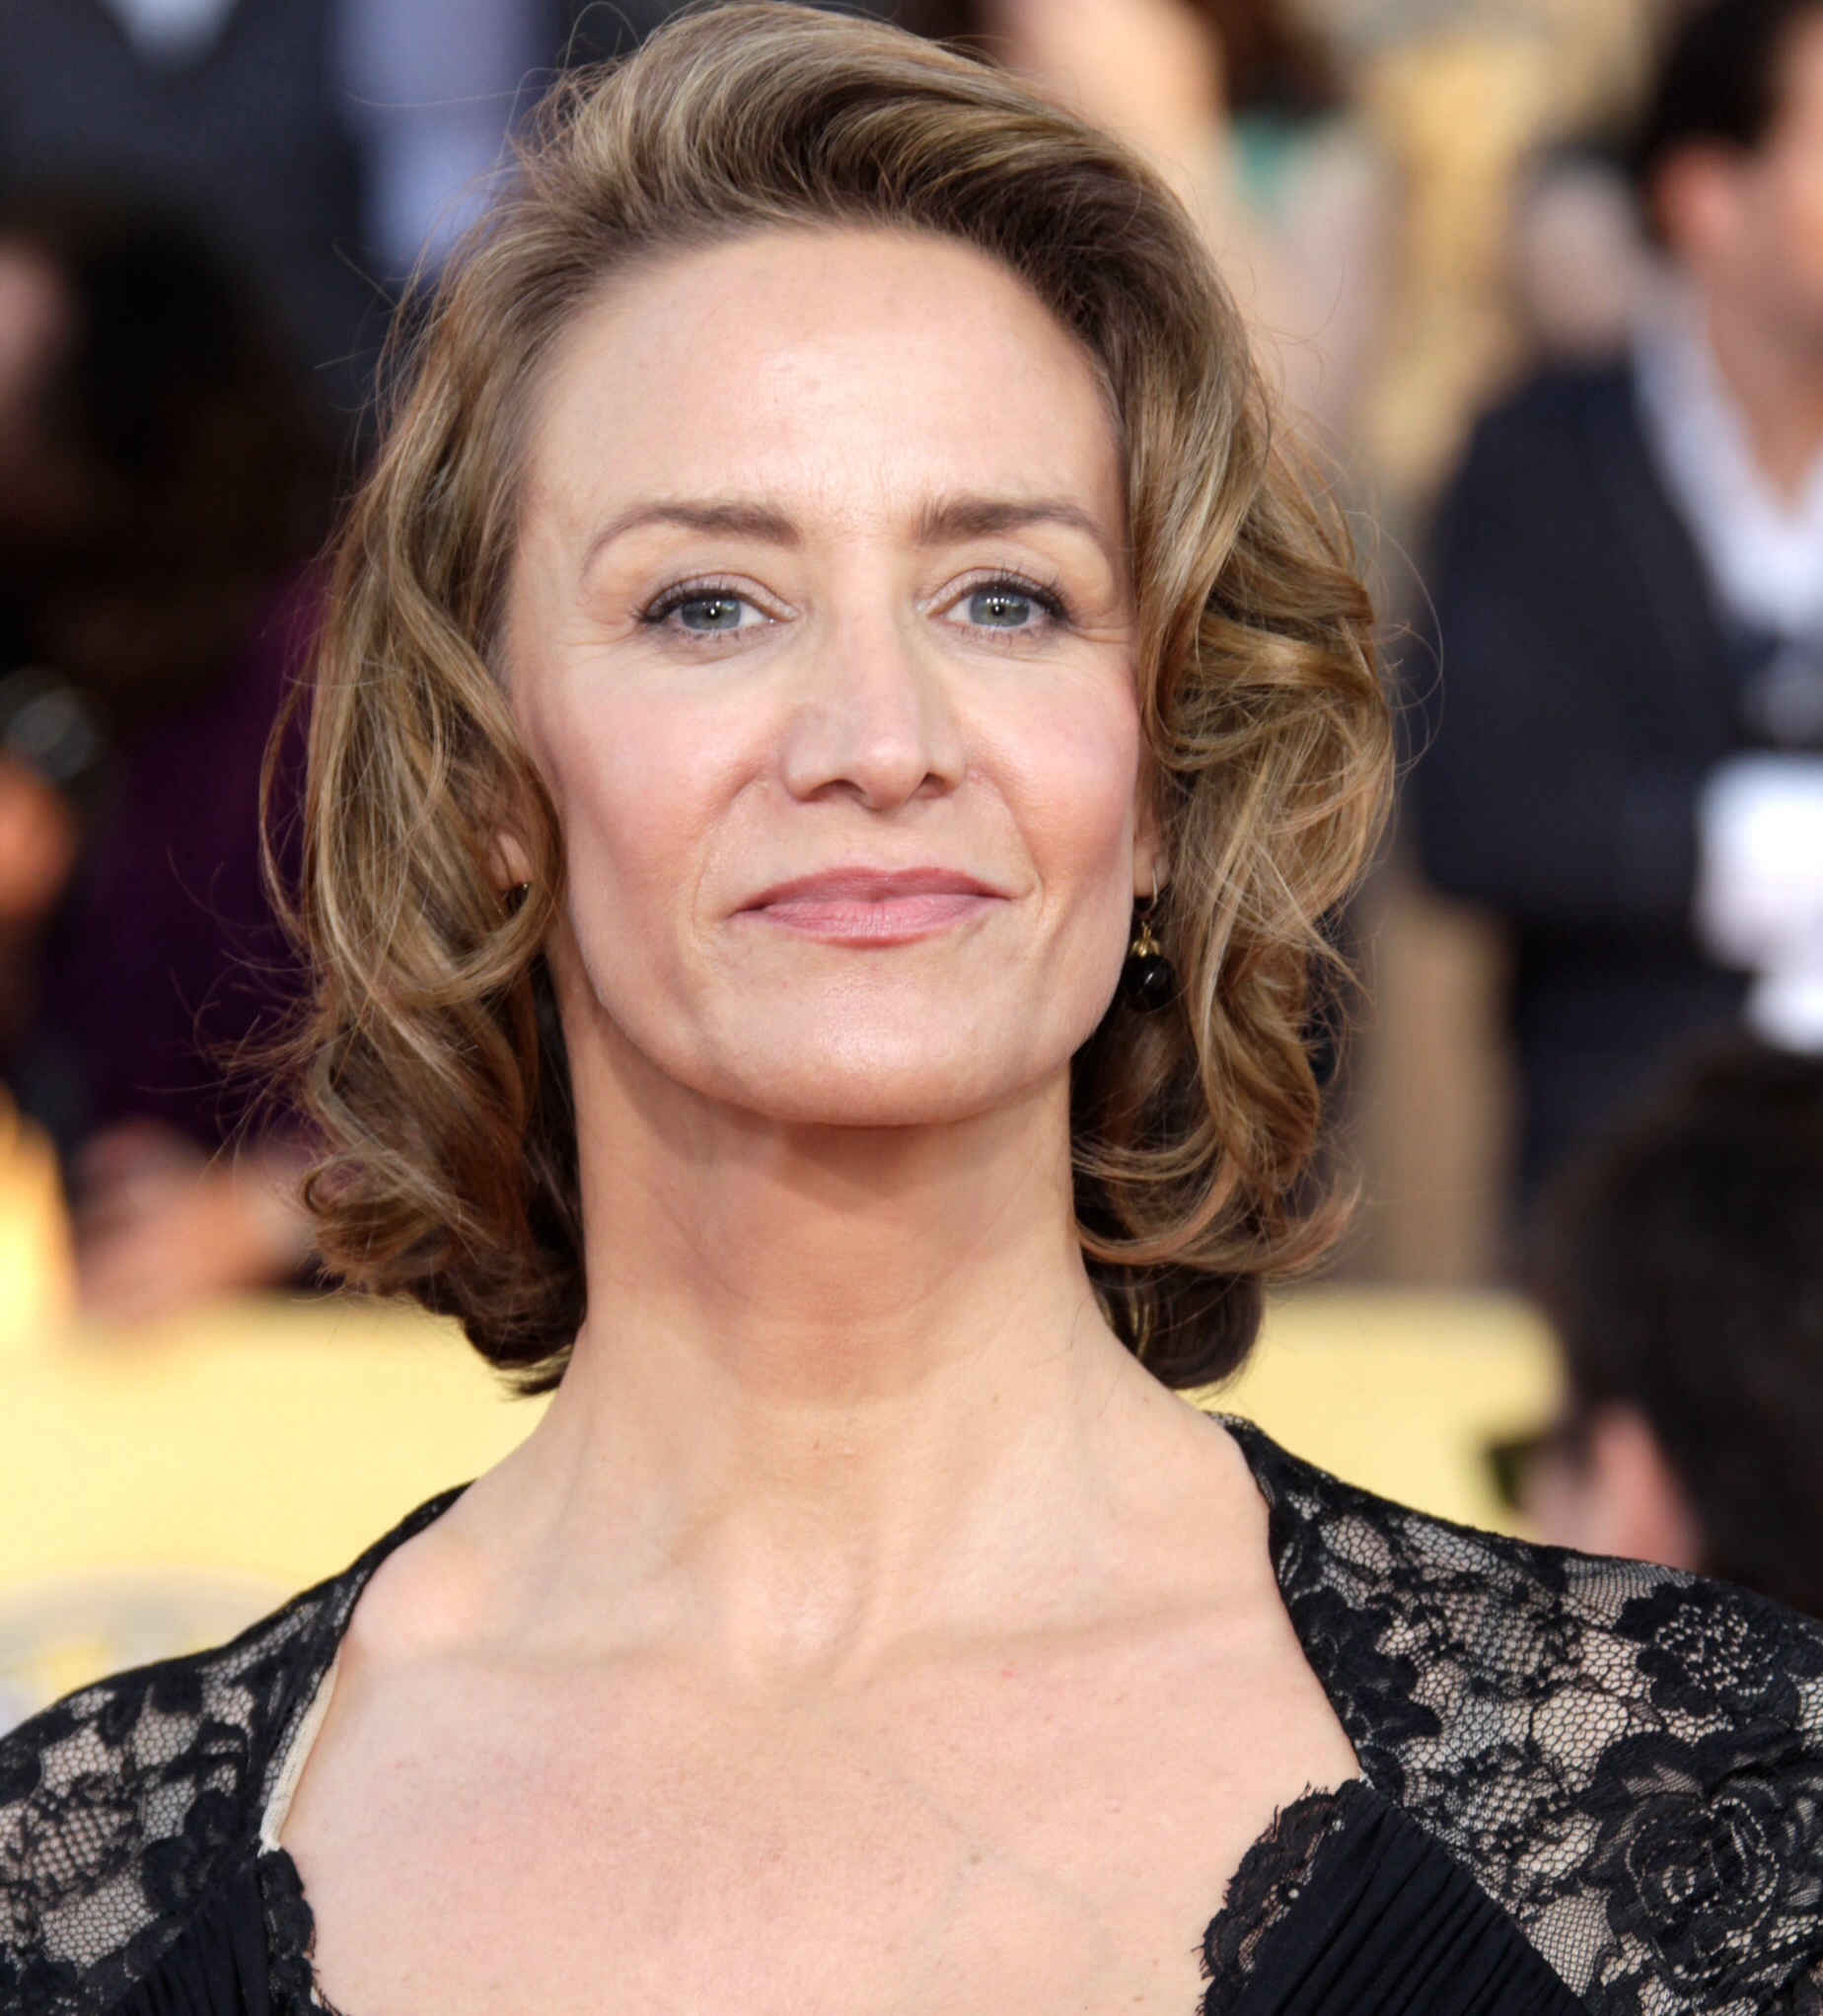 Janet McTeer (born 1961) nude (58 foto and video), Topless, Paparazzi, Selfie, cleavage 2018